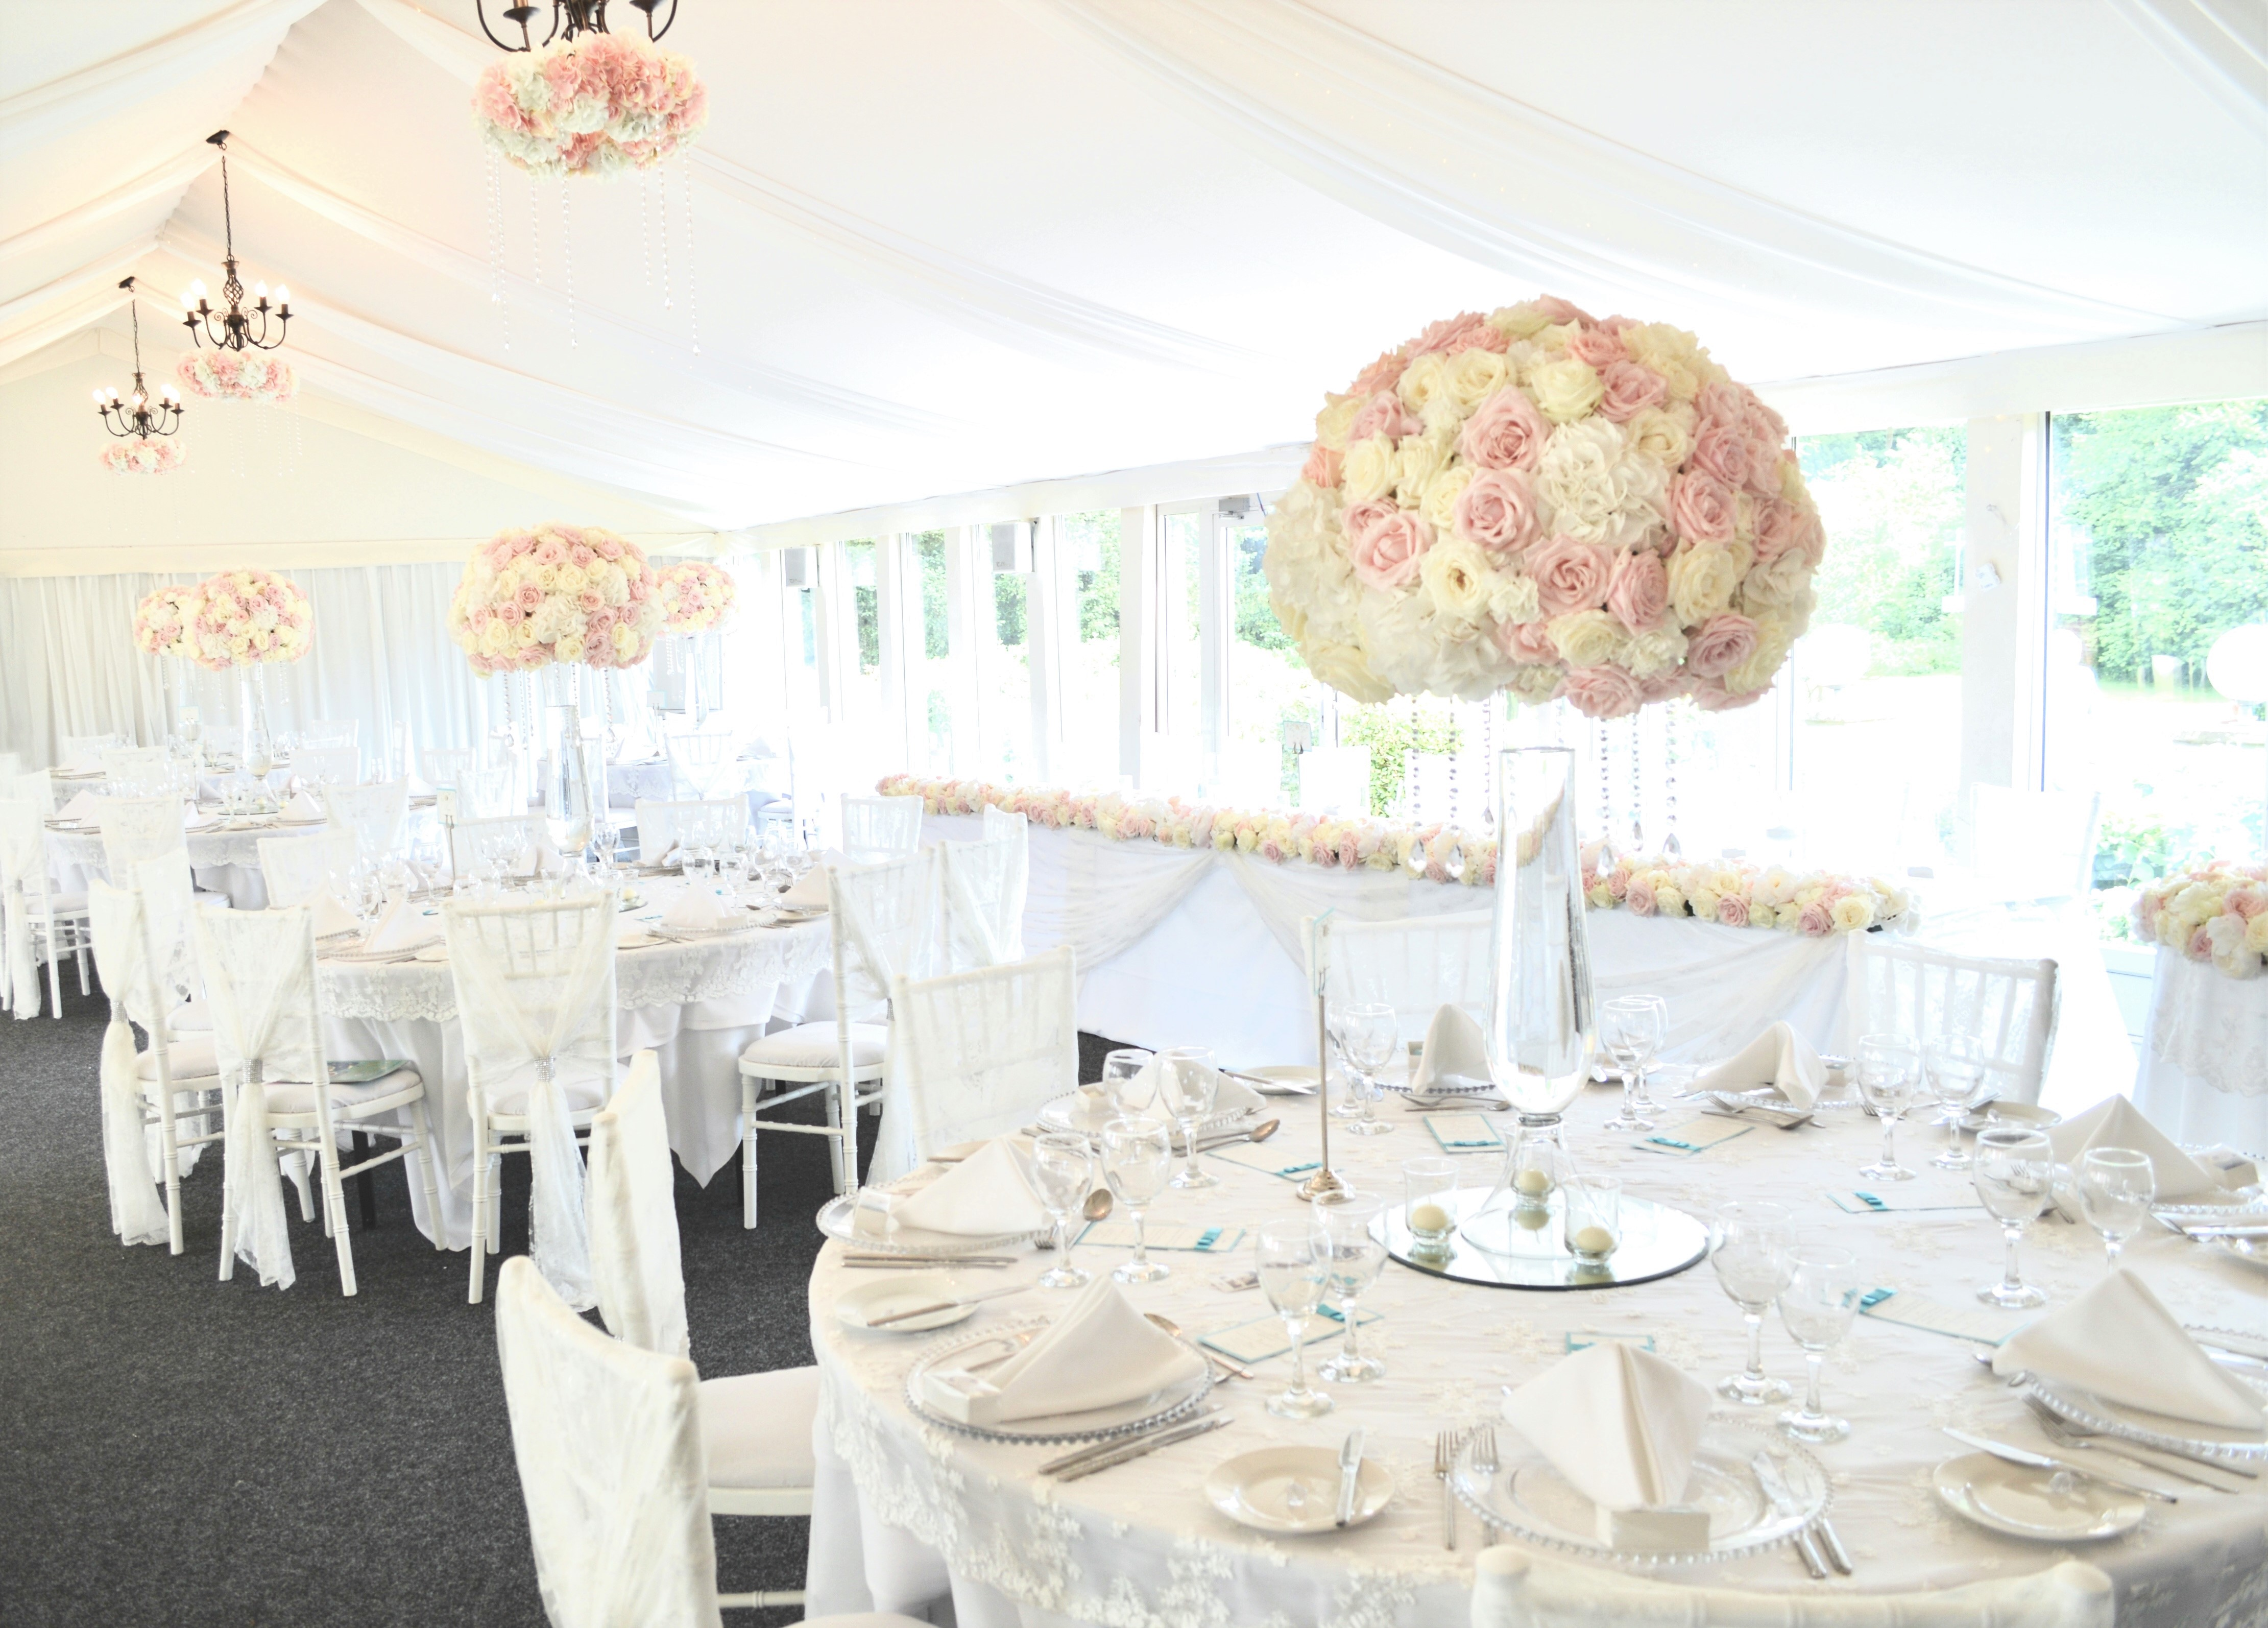 Luxury Blush Pink and White Wedding Flowers and Cake at Hunton Park Peony Hydrangeas and Roses Tall Vase Centrepieces with Crystals and Floral Chandelier Cherie Kelly Cake London 6